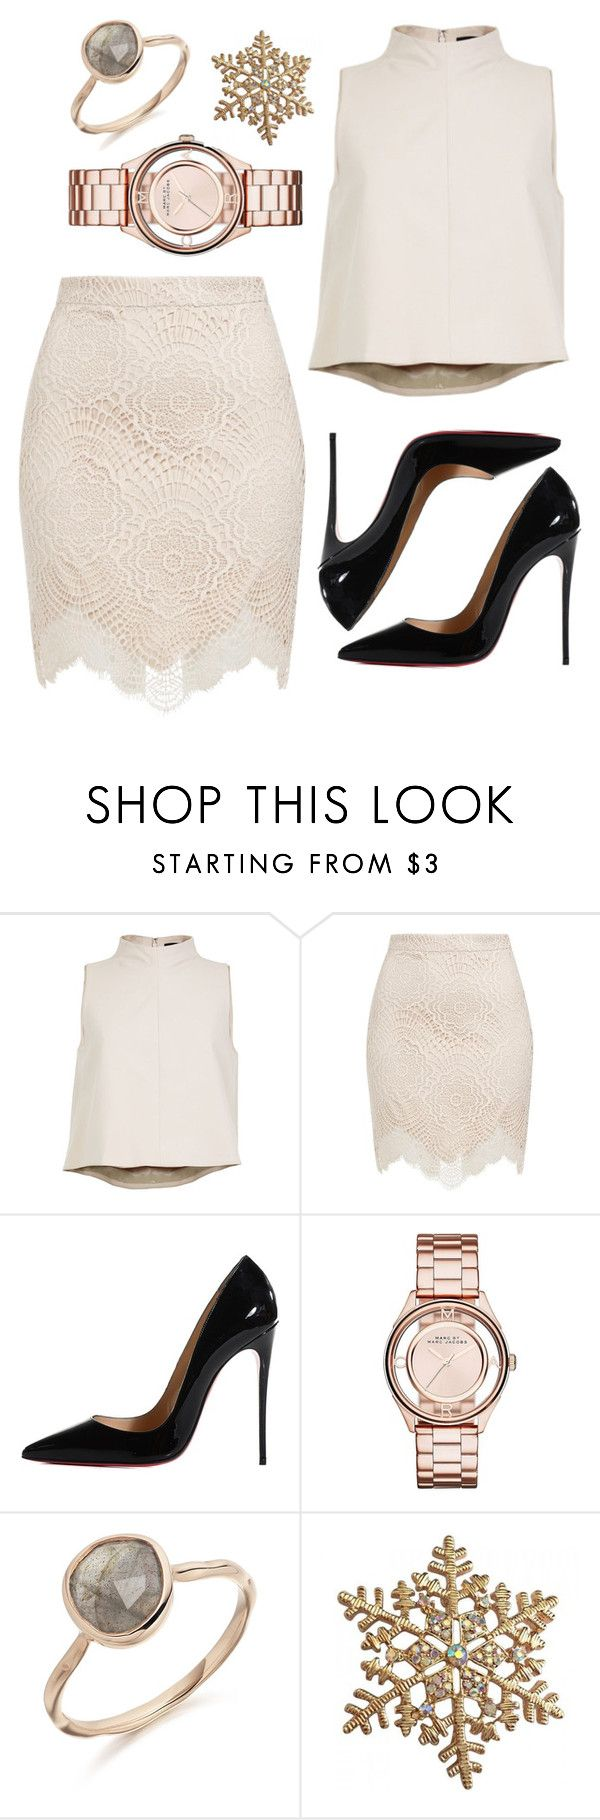 """Untitled #68"" by rodoulla97 on Polyvore featuring TIBI, Christian Louboutin and Marc by Marc Jacobs"